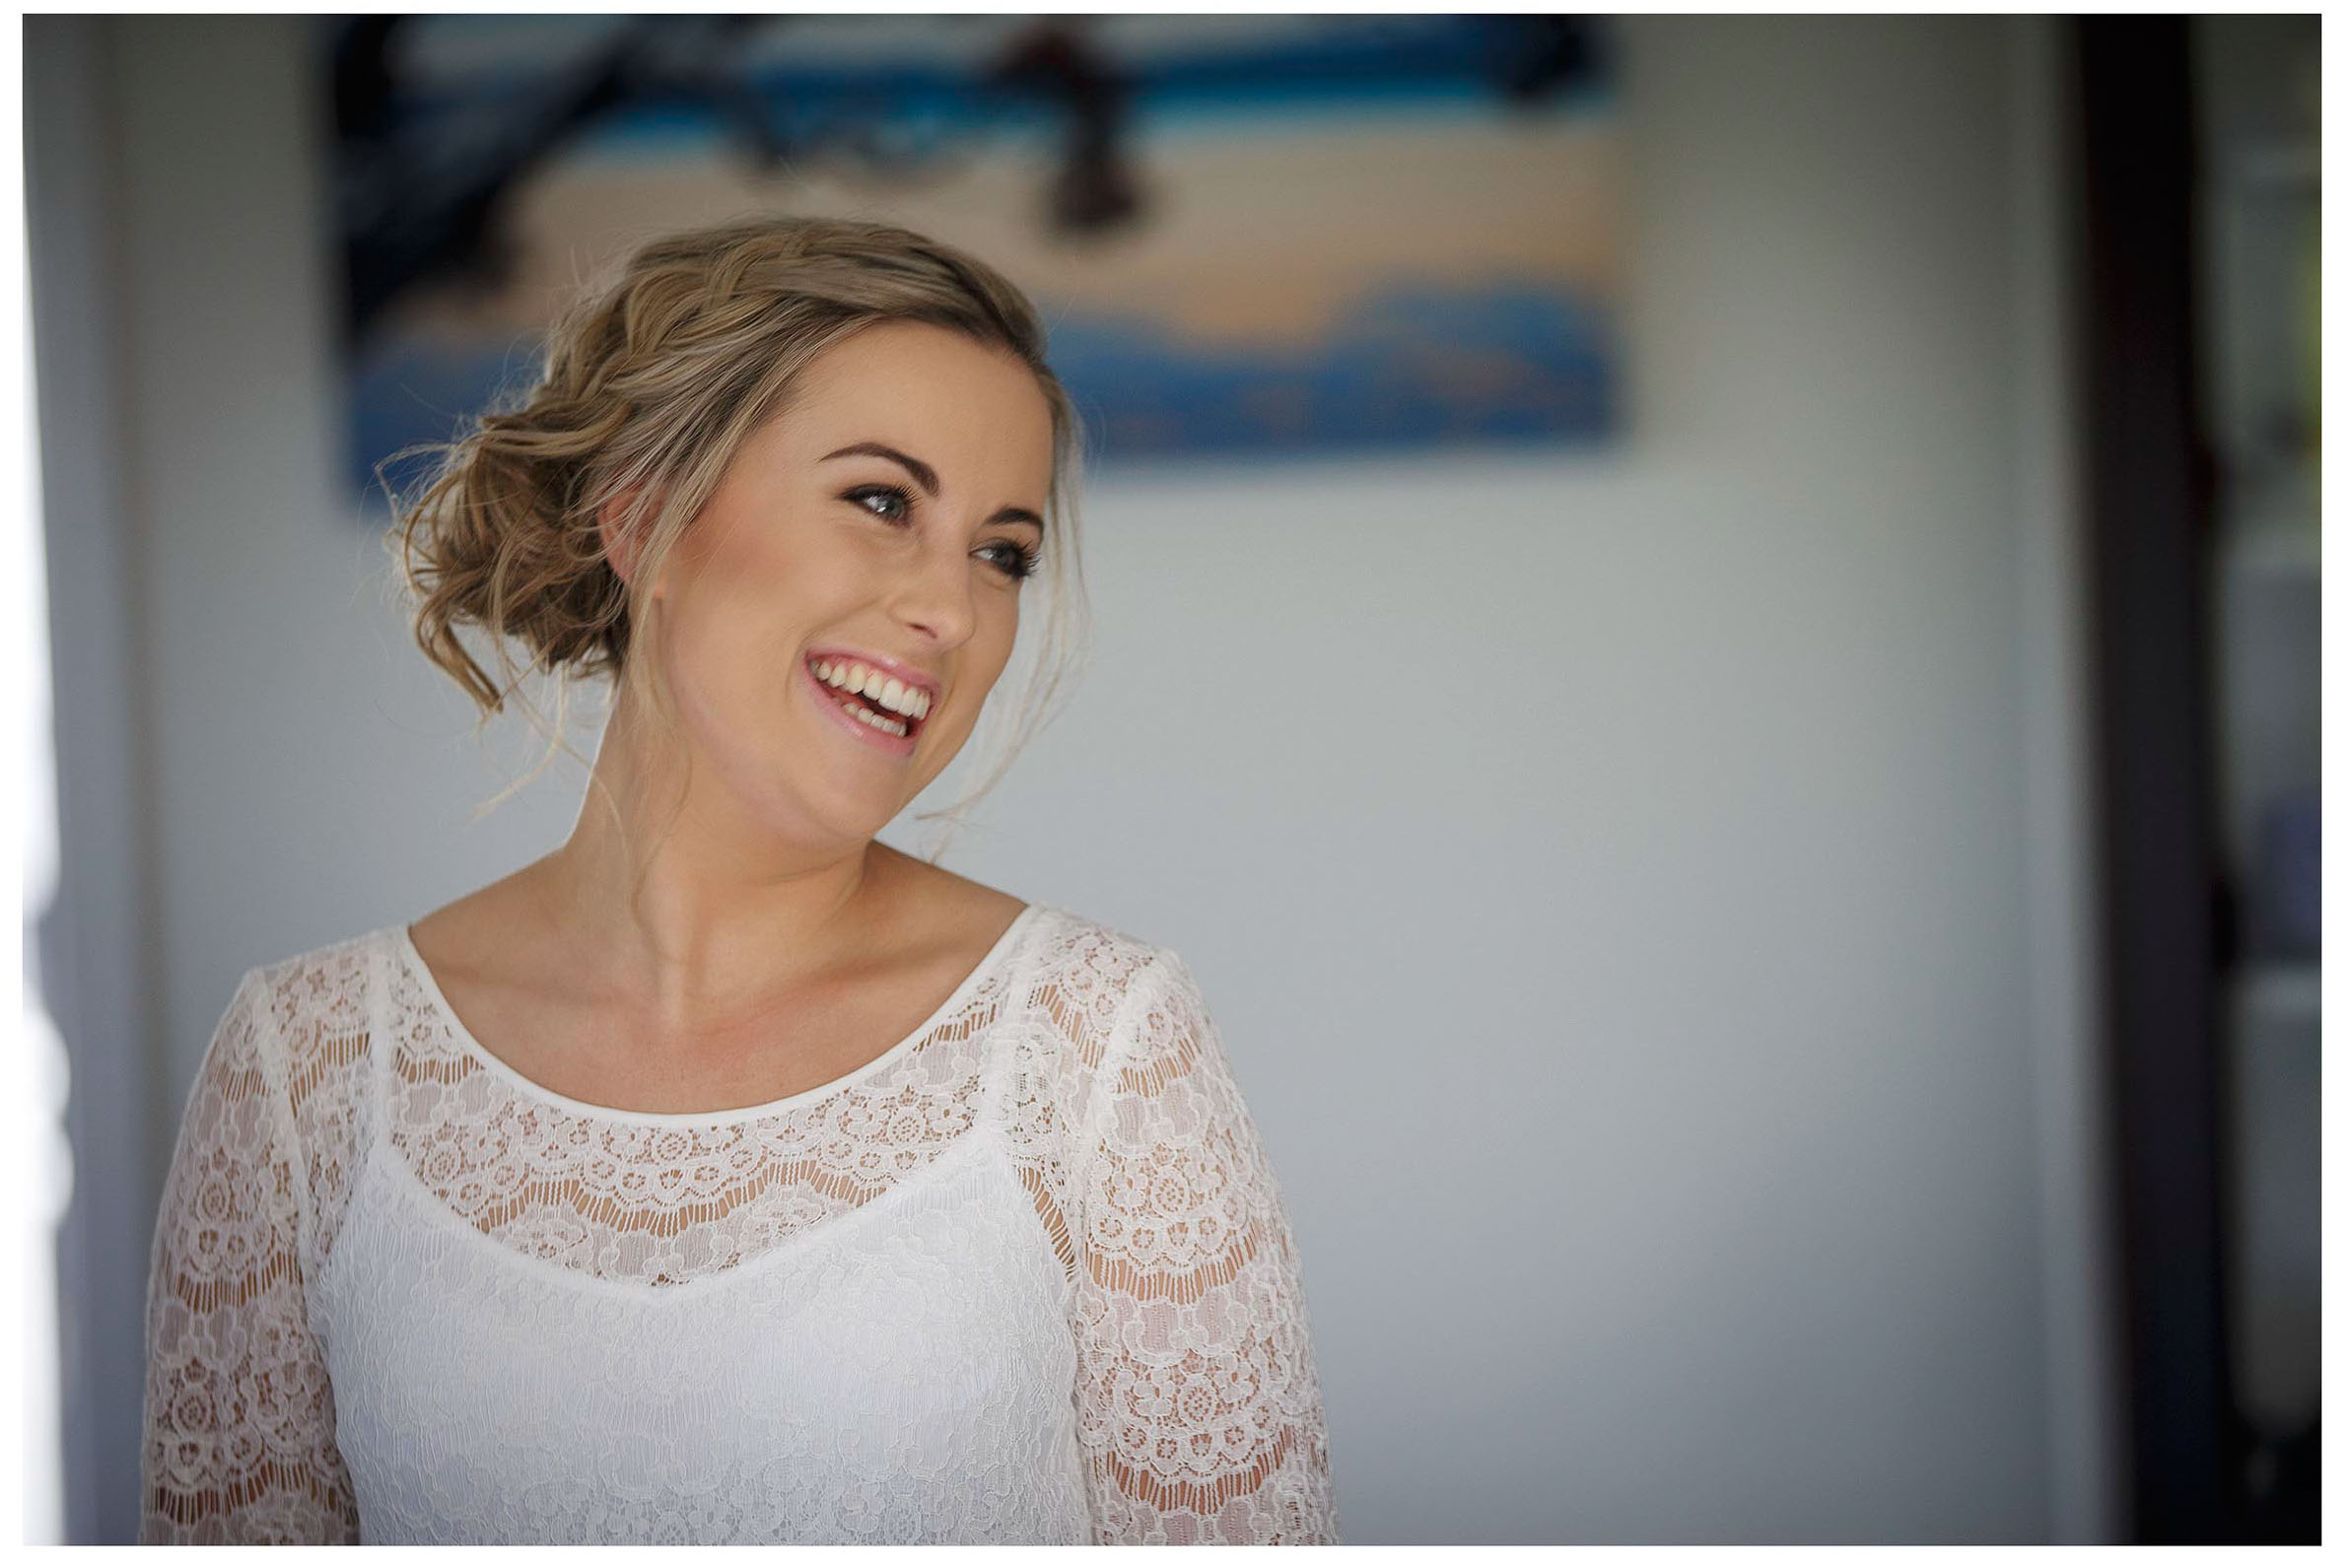 Bride hair and make up Wedding photo by Chris Loufte